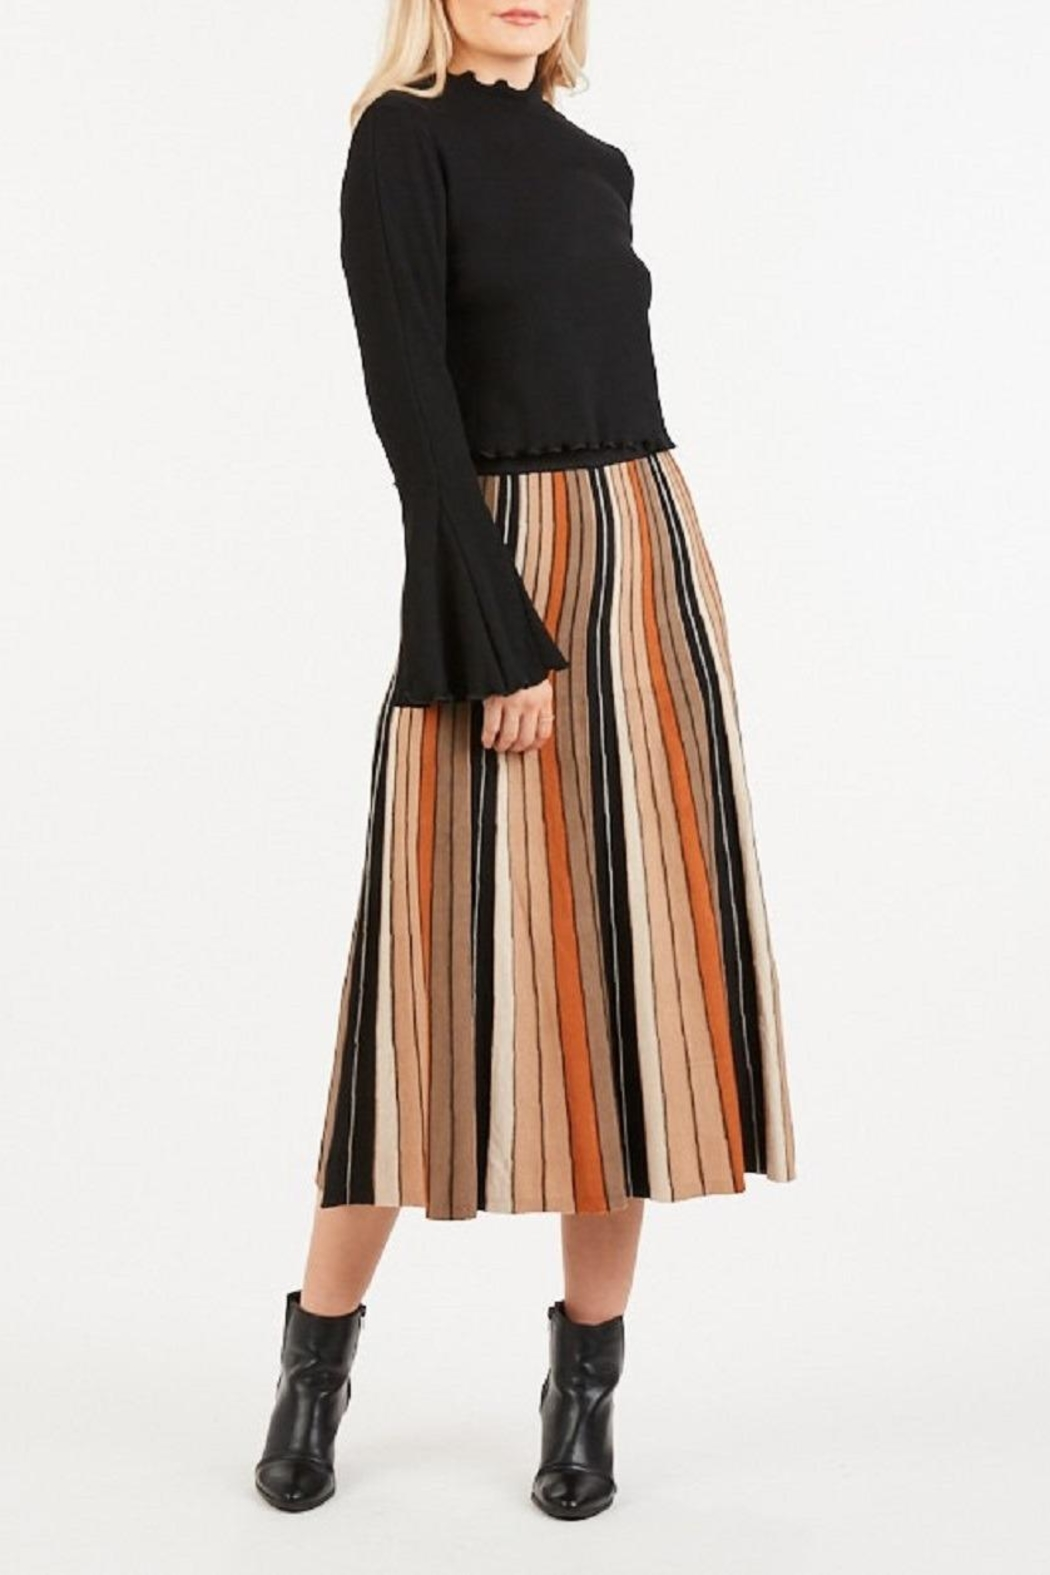 LoveRiche Stripped Knitted Skirt - Main Image